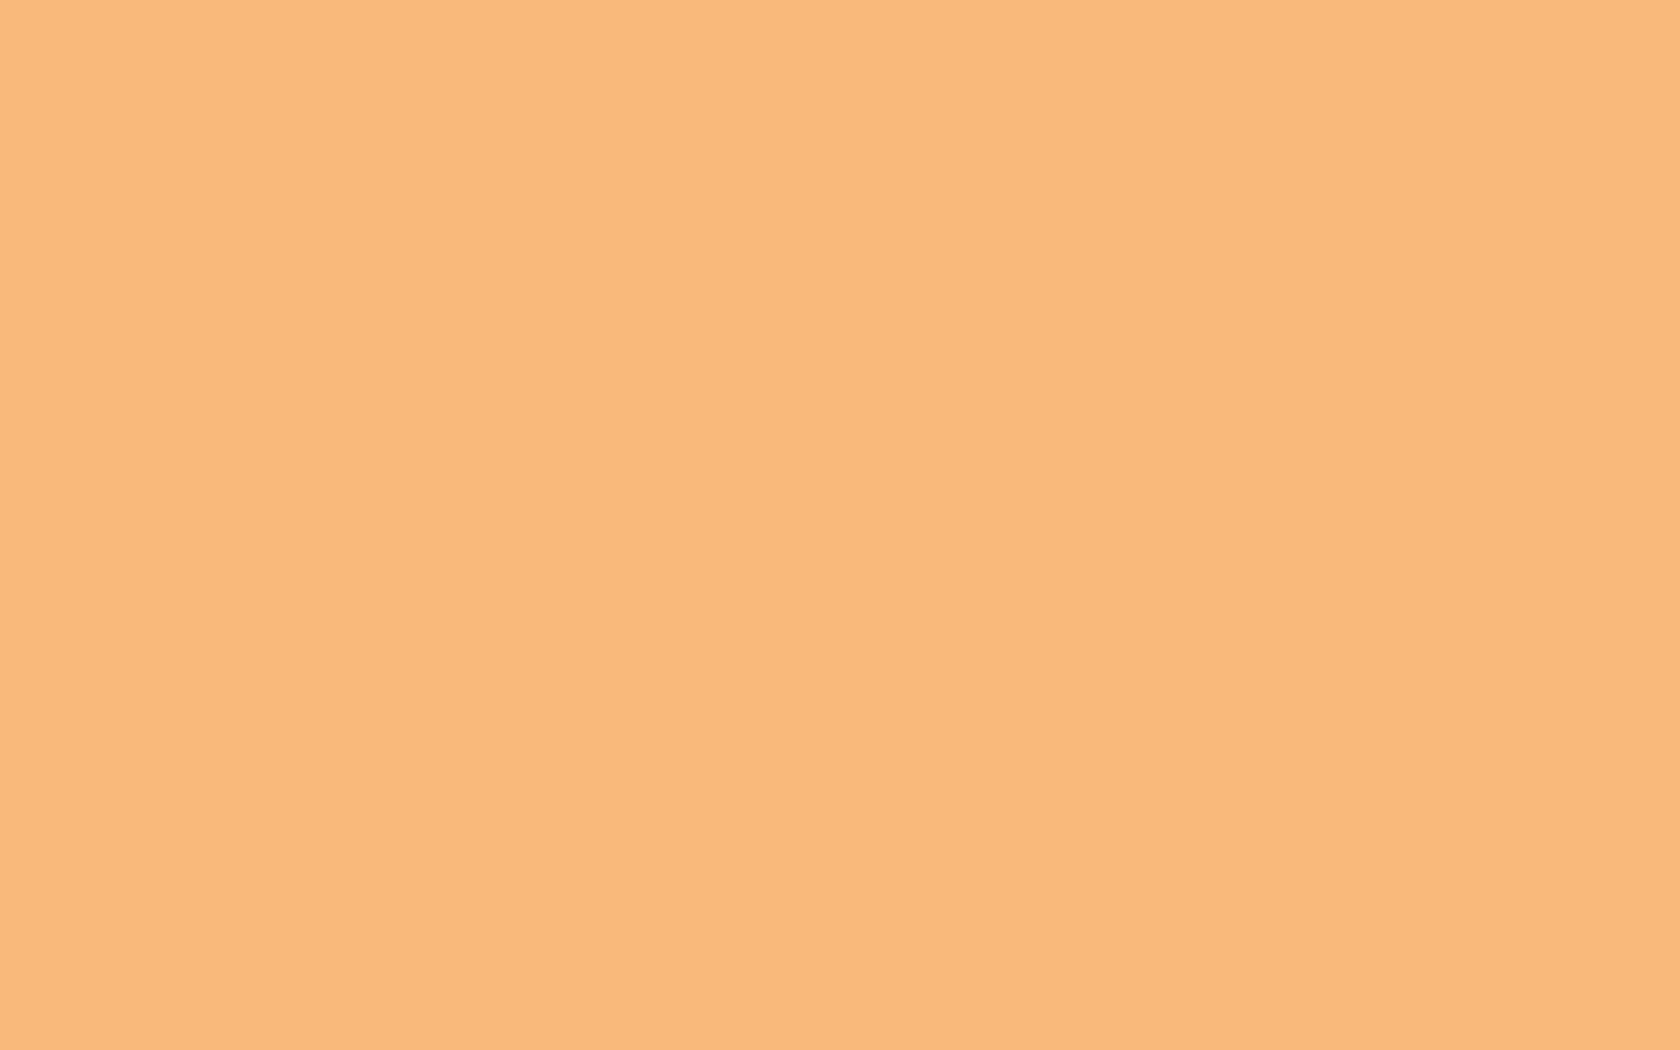 1680x1050 Mellow Apricot Solid Color Background